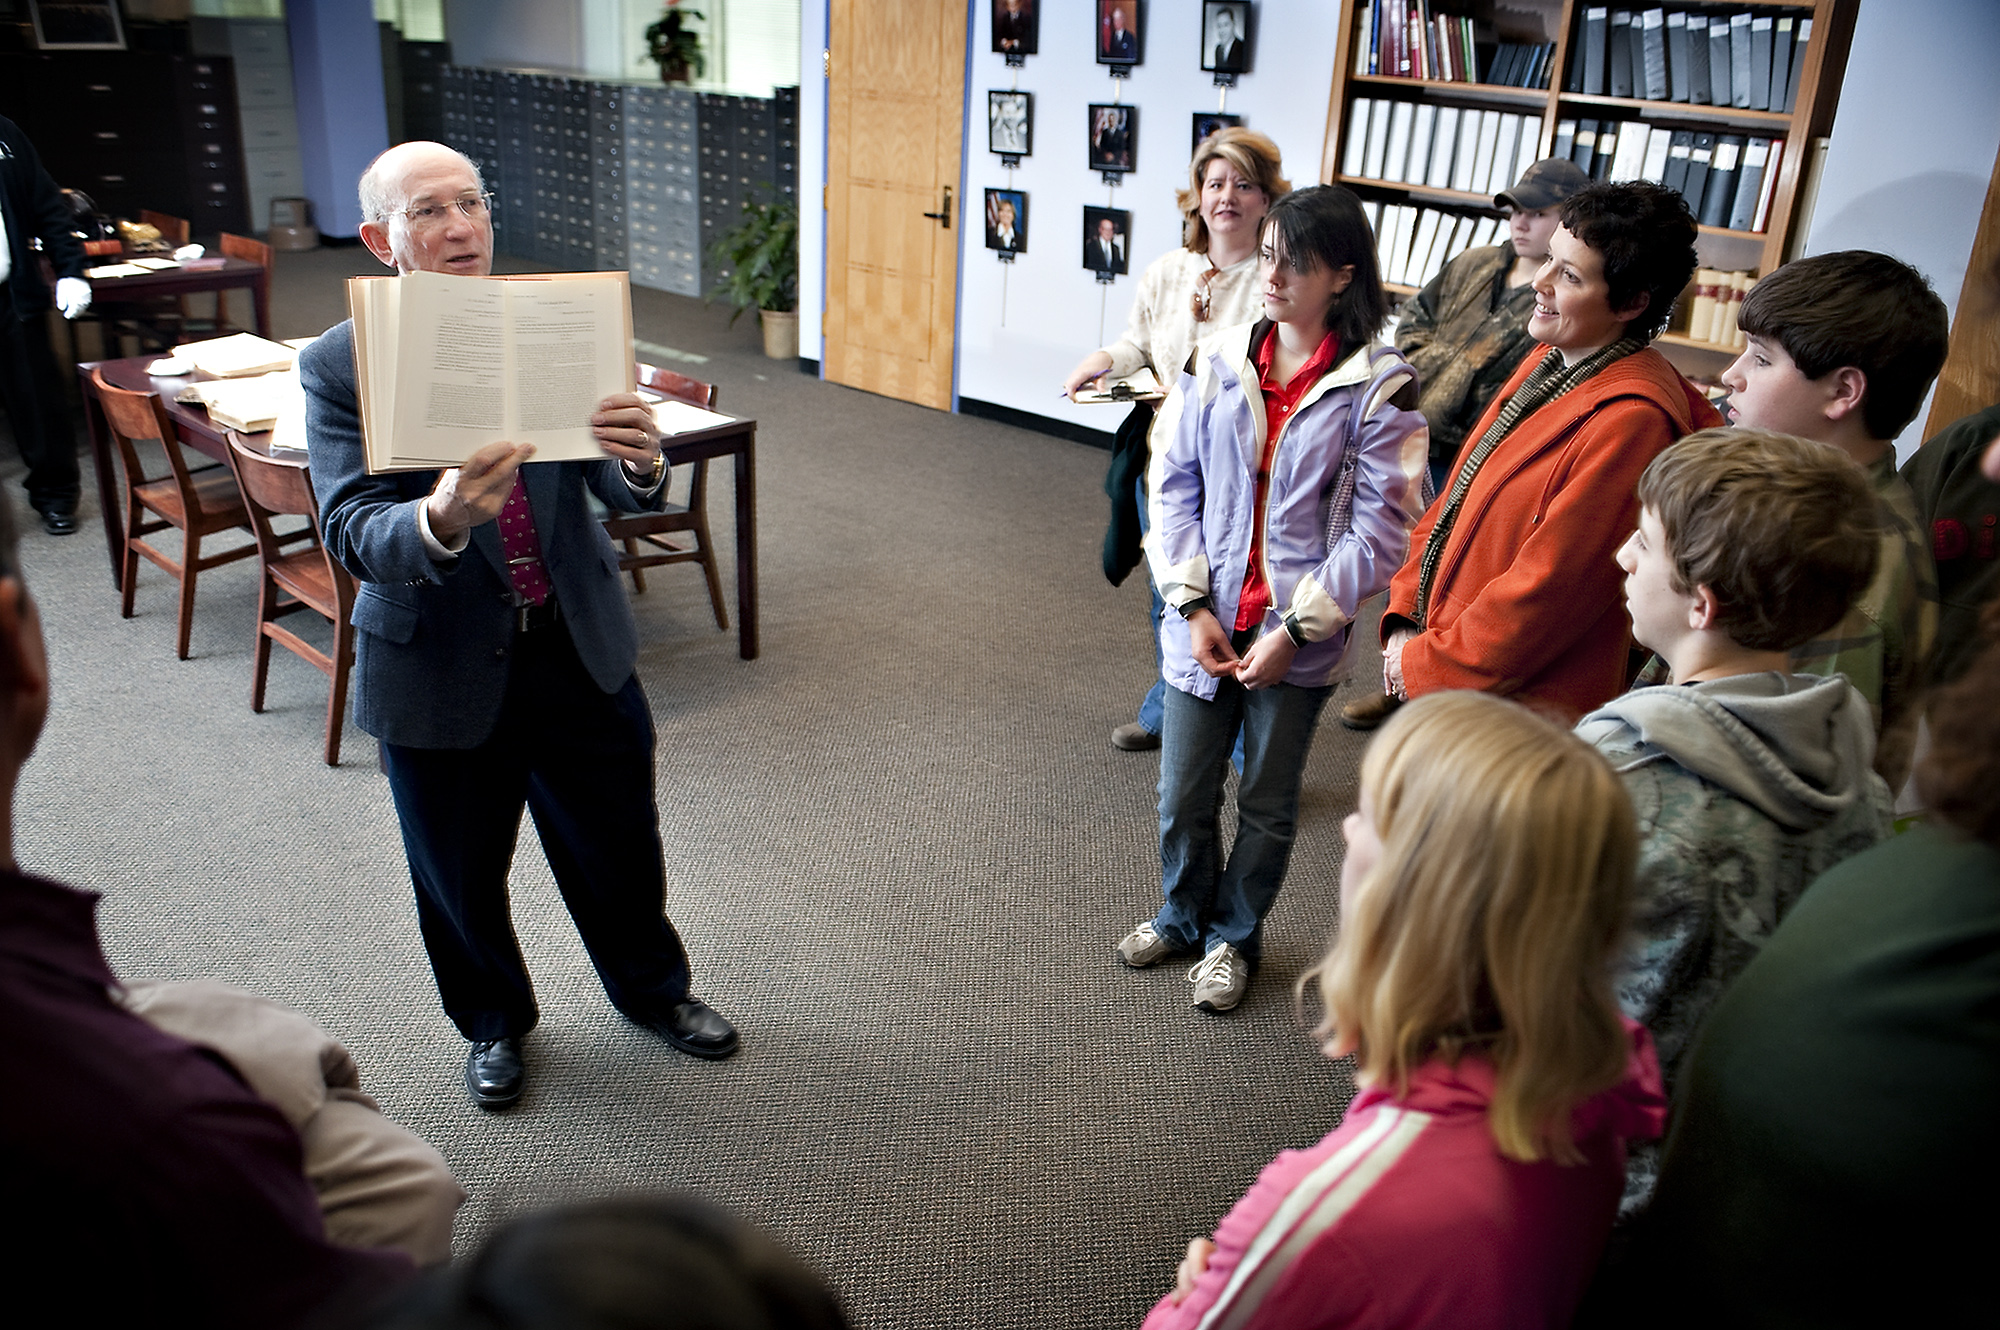 At MSU's Mitchell Memorial Library, John Marszalek recently showed visiting high school students a selection of President U.S. Grant's papers--something they now also may view online.